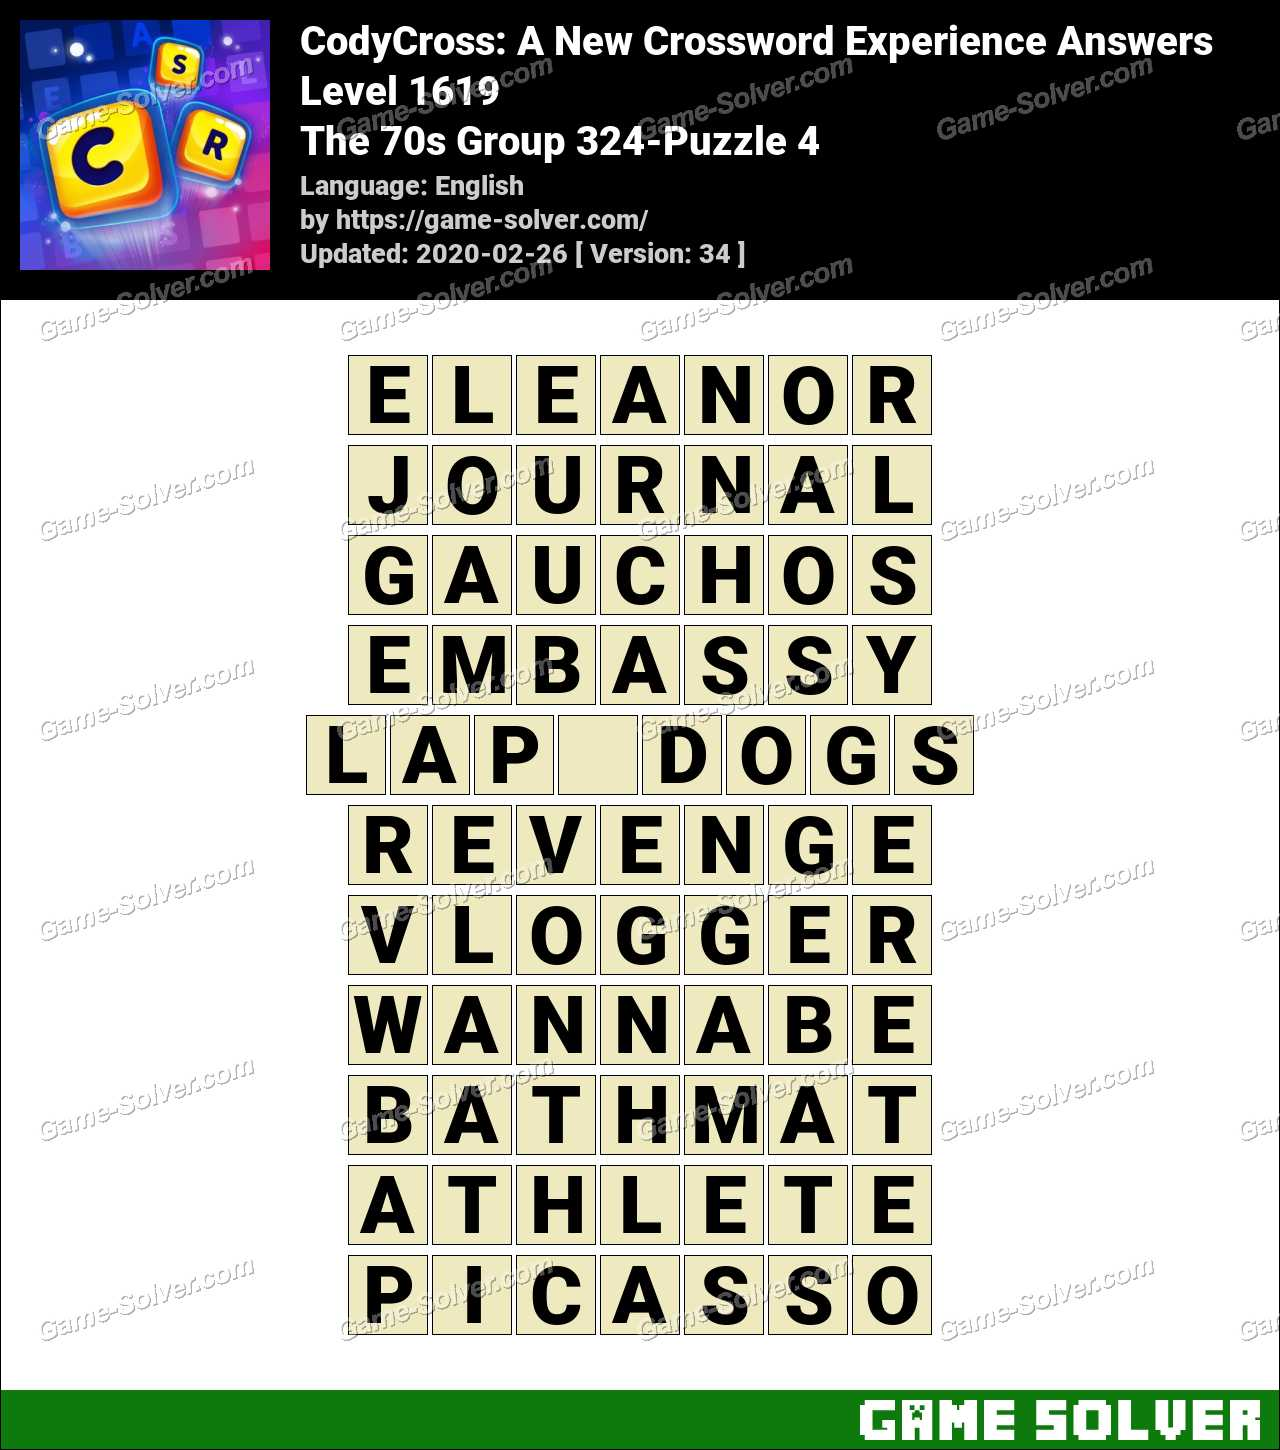 CodyCross The 70s Group 324-Puzzle 4 Answers